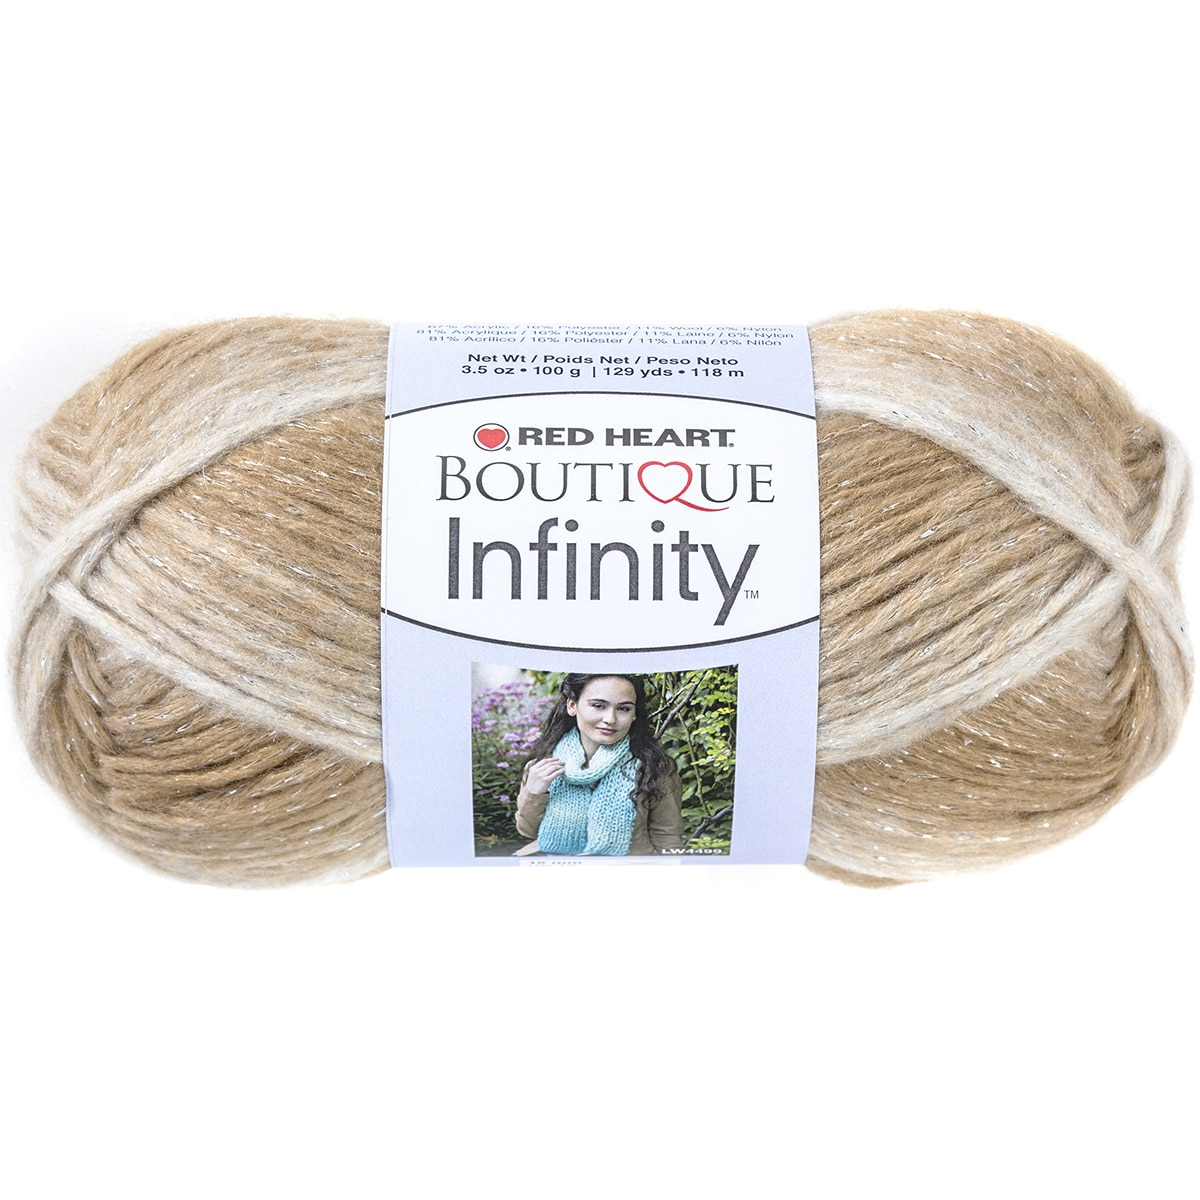 Red Heart Infinity Blossom 3 Skeins 129 yds